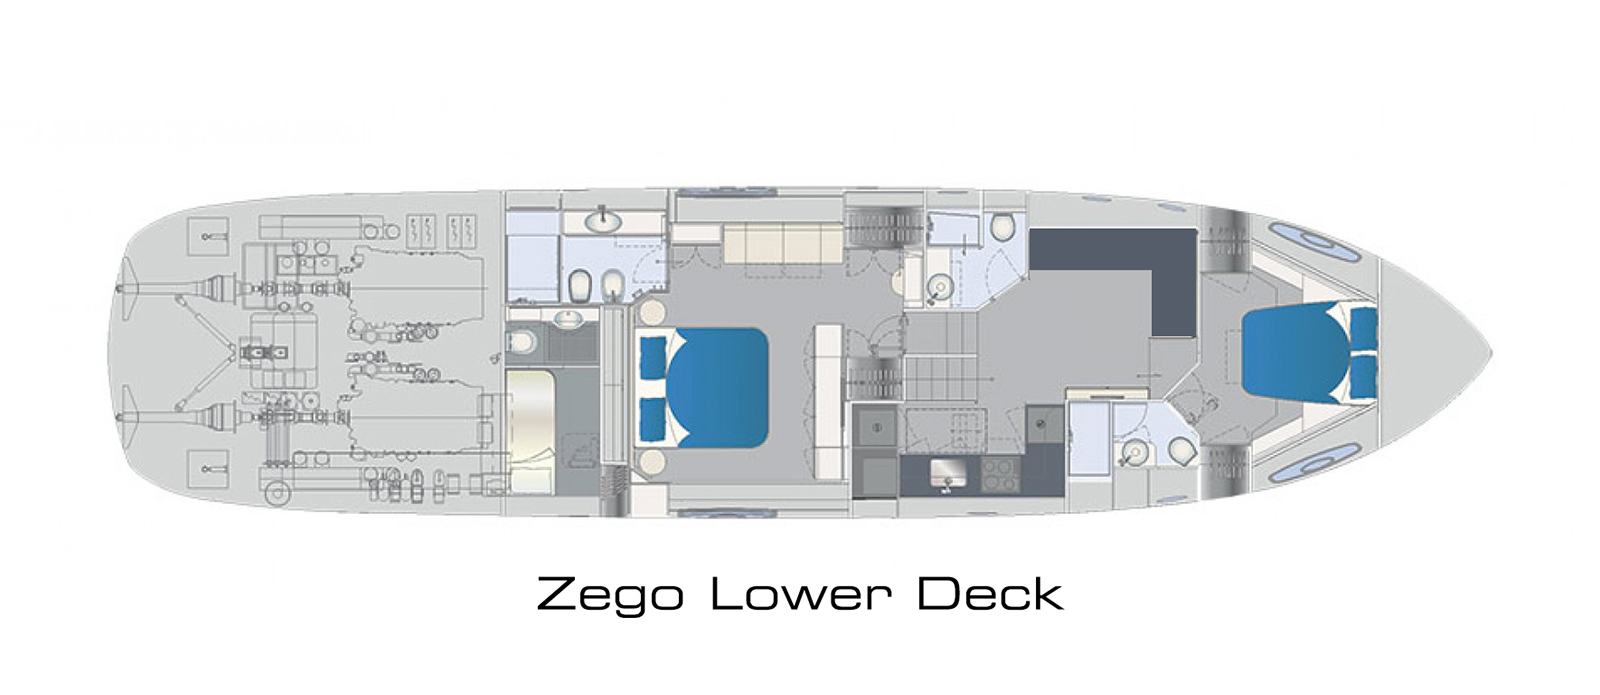 Pershing 70 Lower Deck